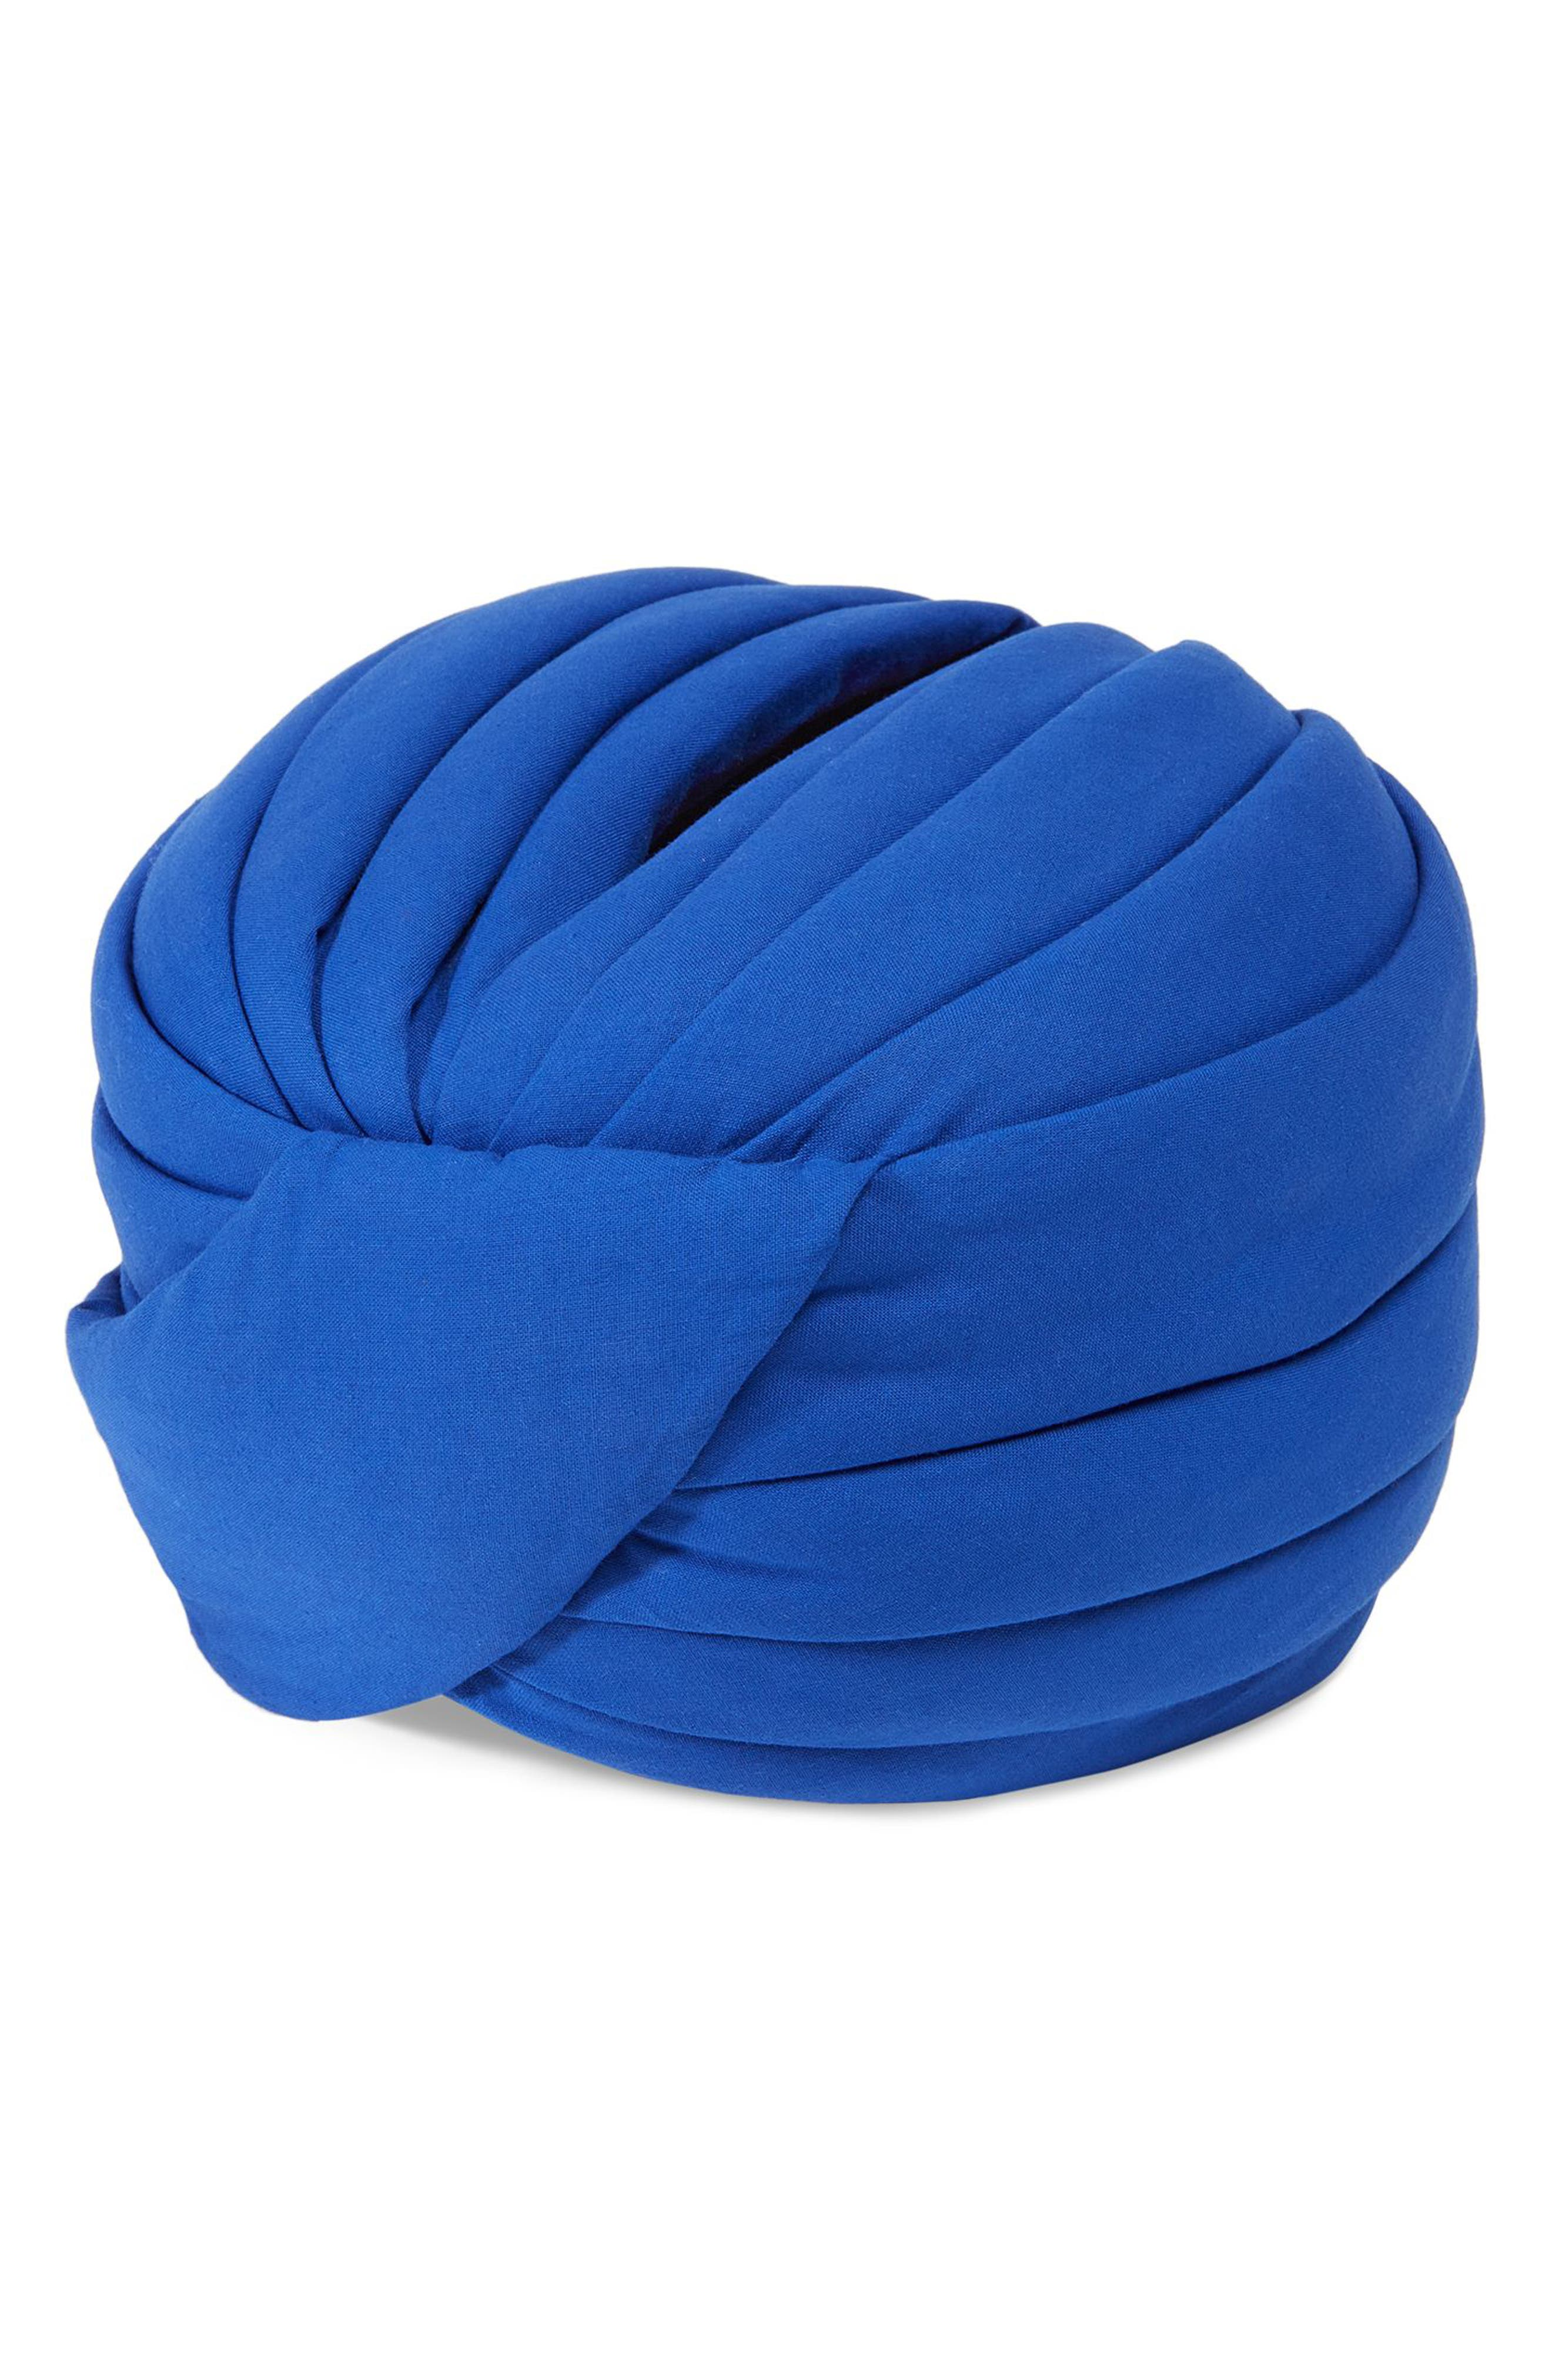 Indy Full Turban,                         Main,                         color,